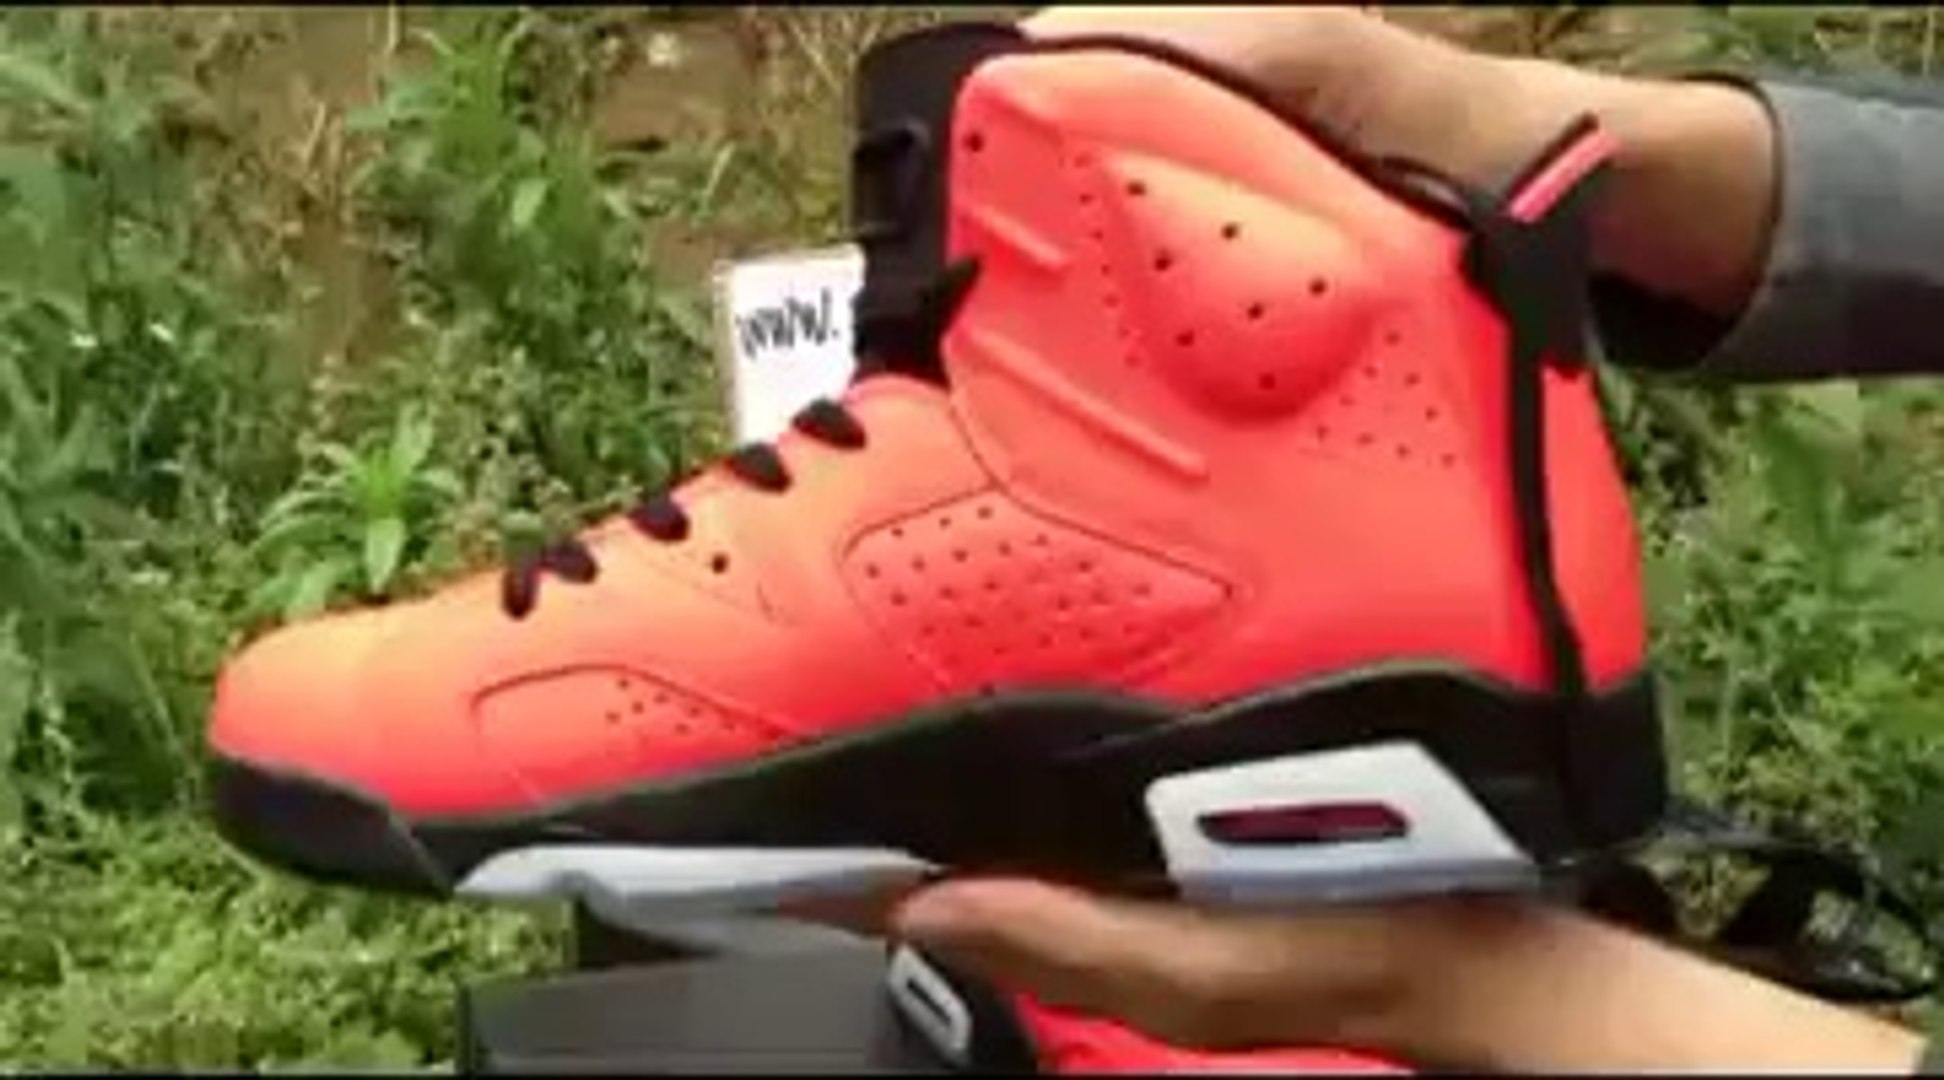 cheap Nike Shoes Online, cheap nike air jordan 6 official synchronized correctly fluorescent red sup